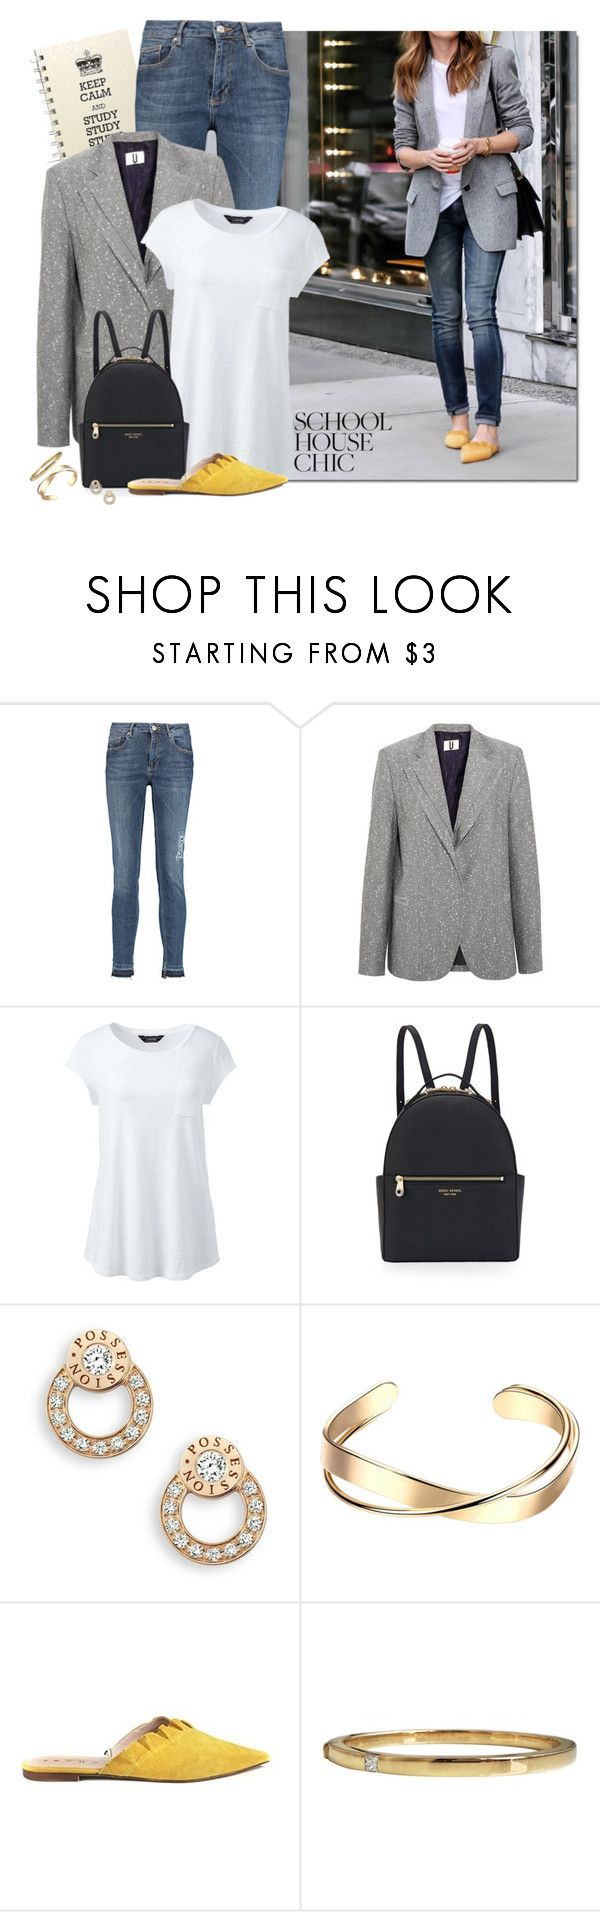 """Finals Week:  Simple Blazer Outfit"" by fashionista88 ❤ liked on Polyvore featuring Zoe Karssen, Topshop Unique, Lands' End, Henri Bendel, Piaget, Cartier and plus size clothing"